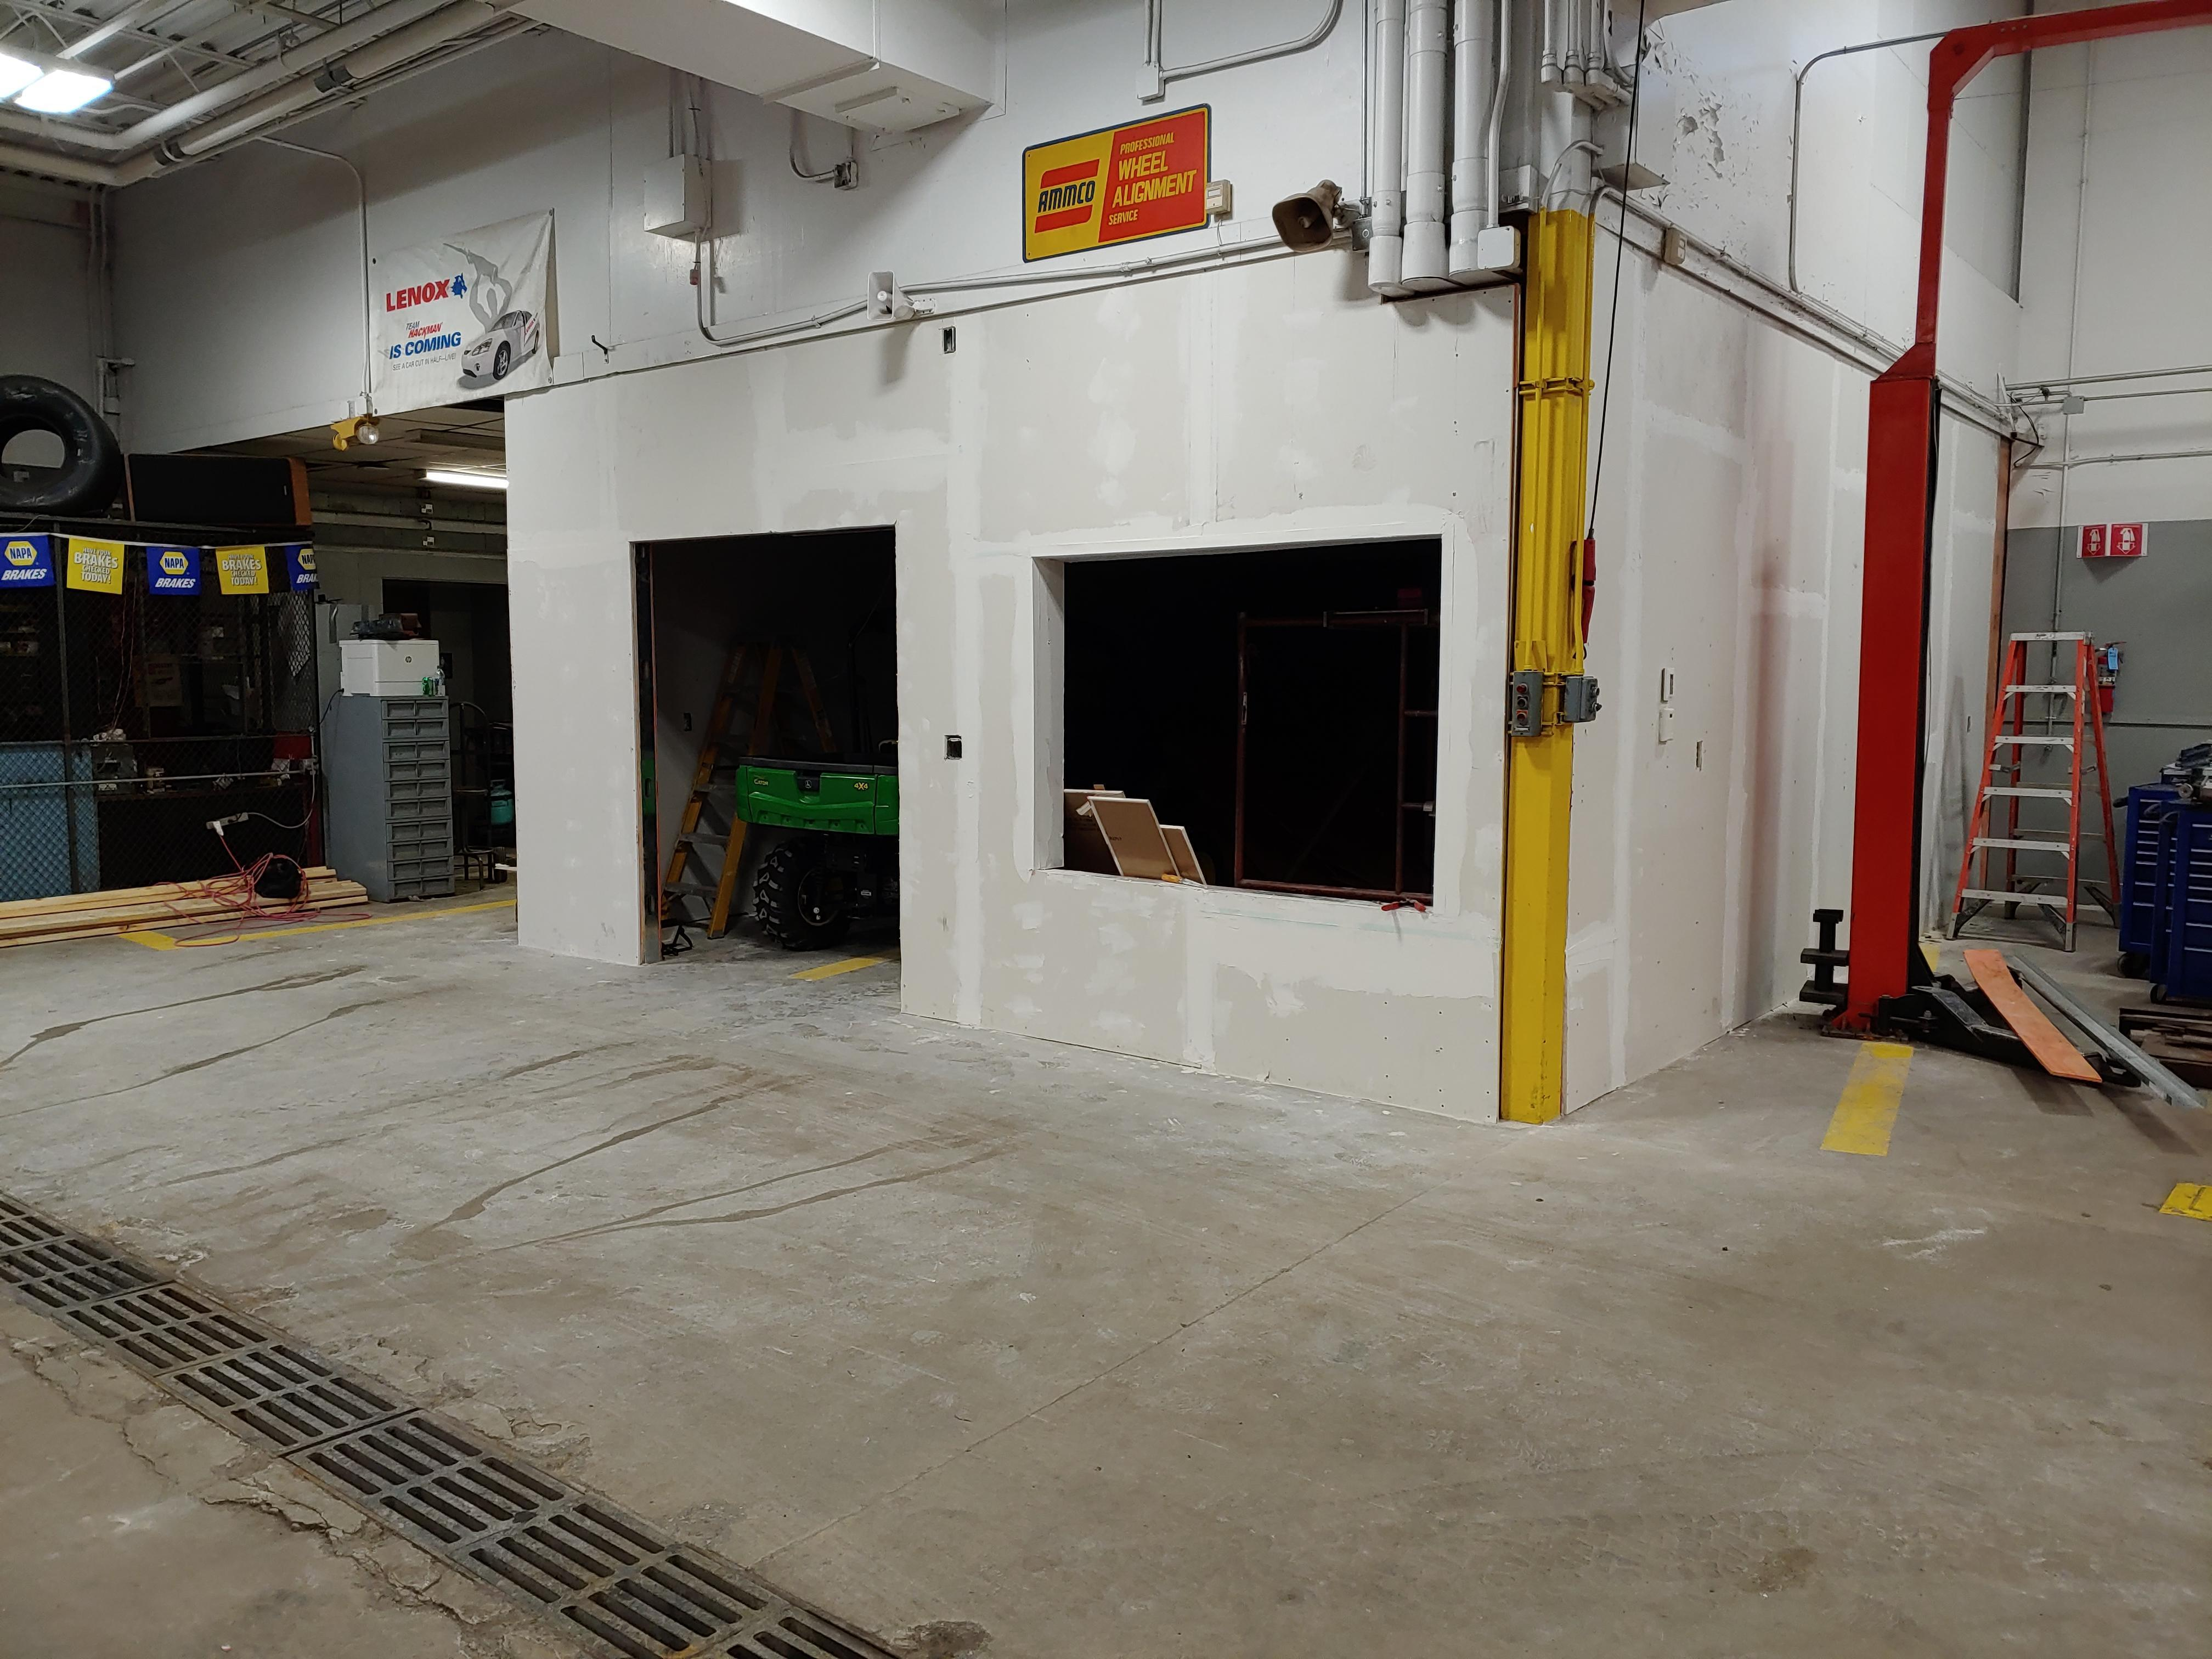 New tool room in Auto shop